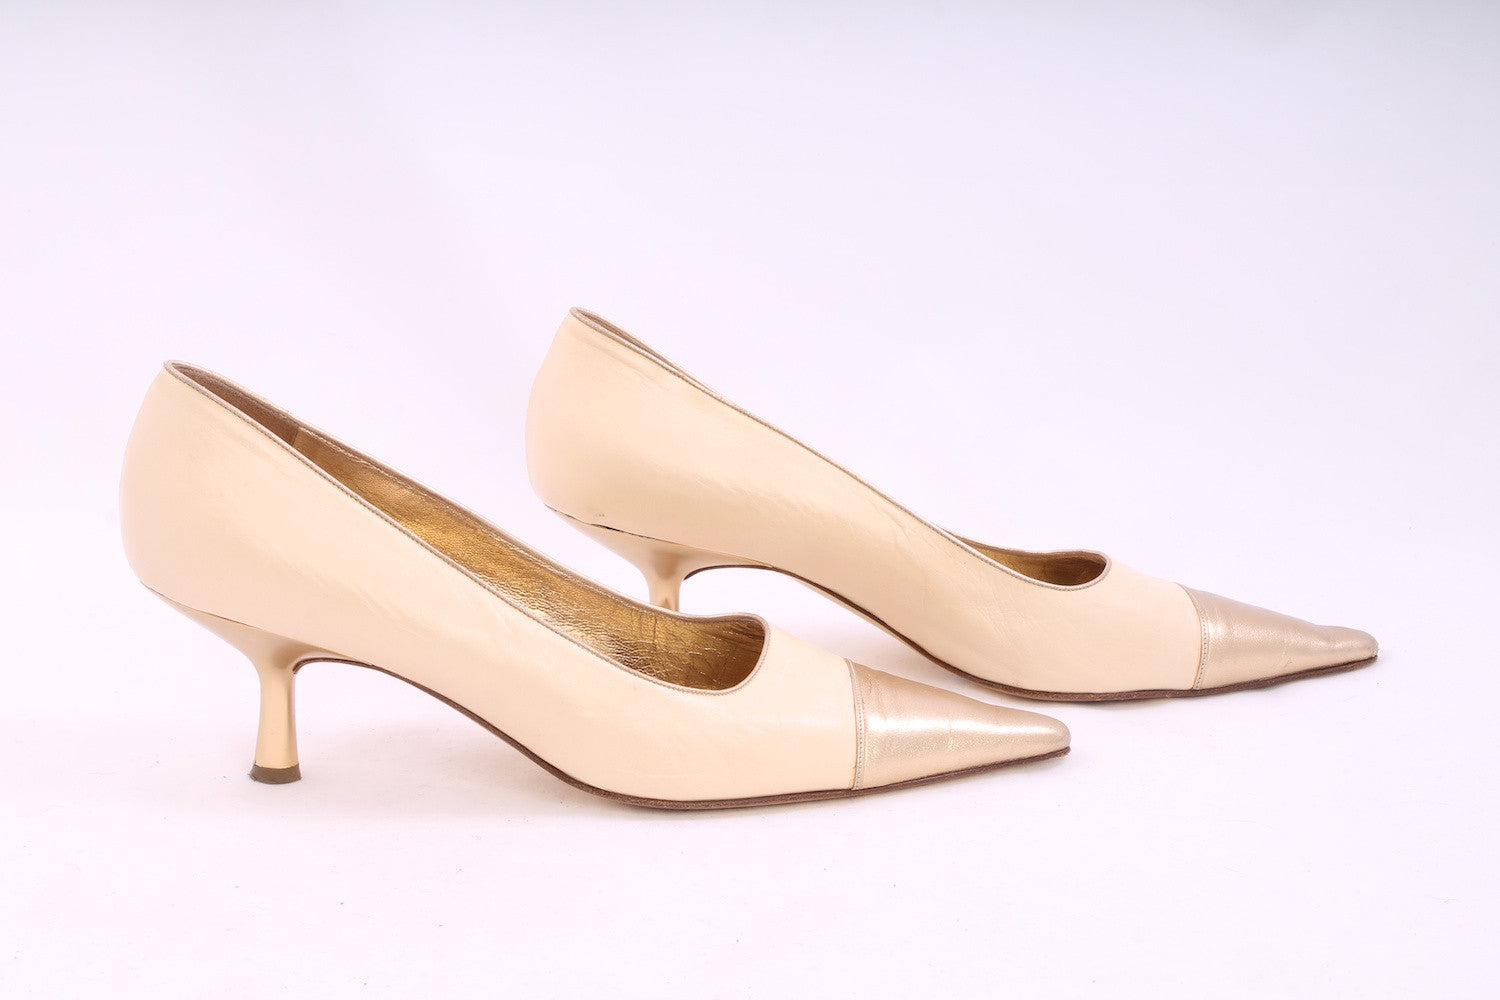 CHANEL Cream Gold Pointed Toe Kitten Heels Size 39.5